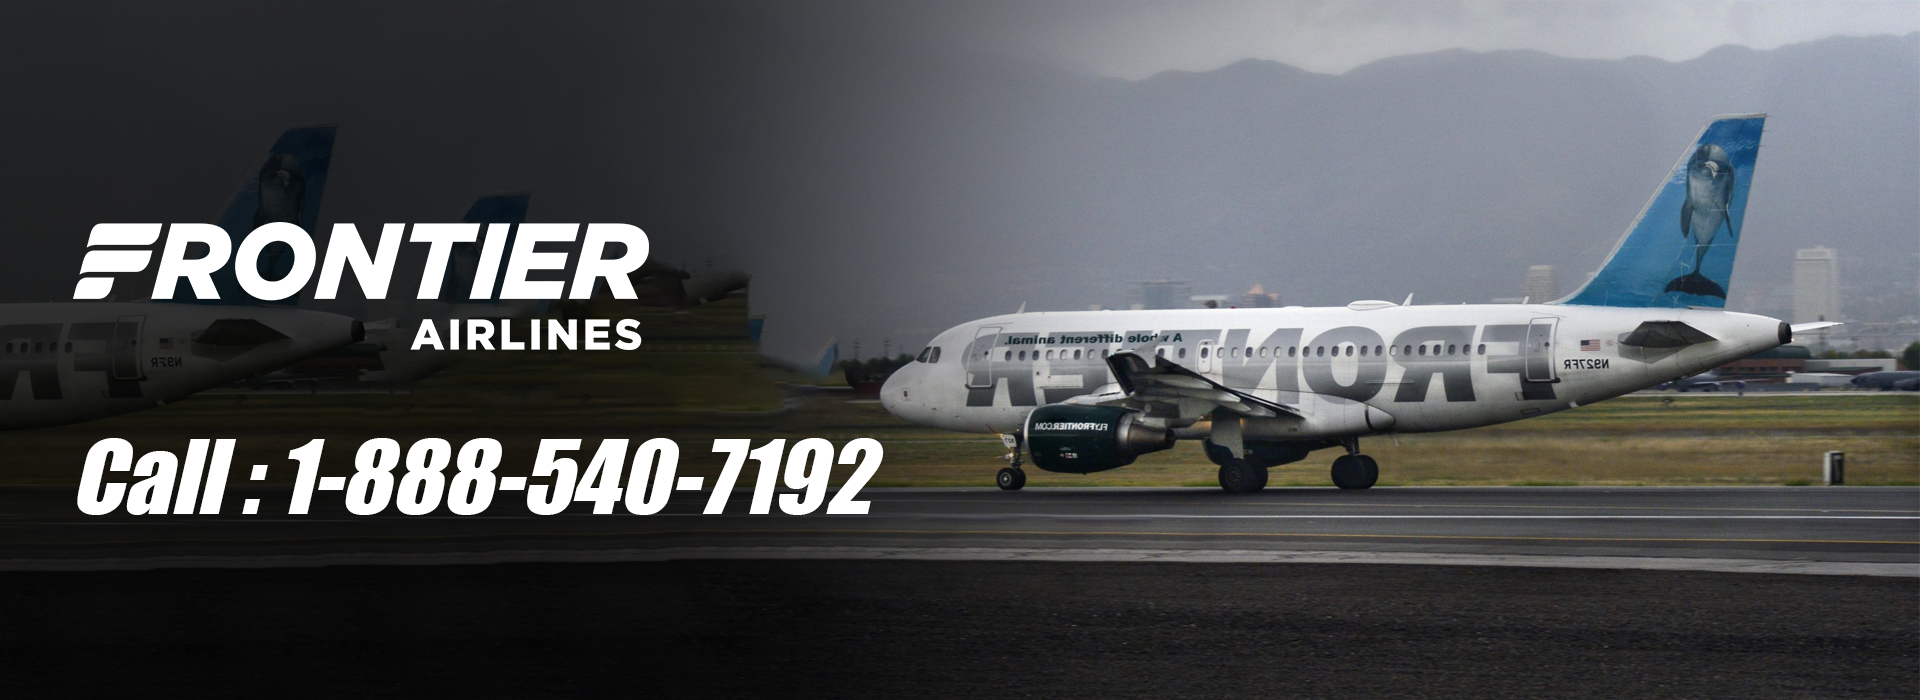 FRONTIER Airline Phone Number 1-888-540-7192